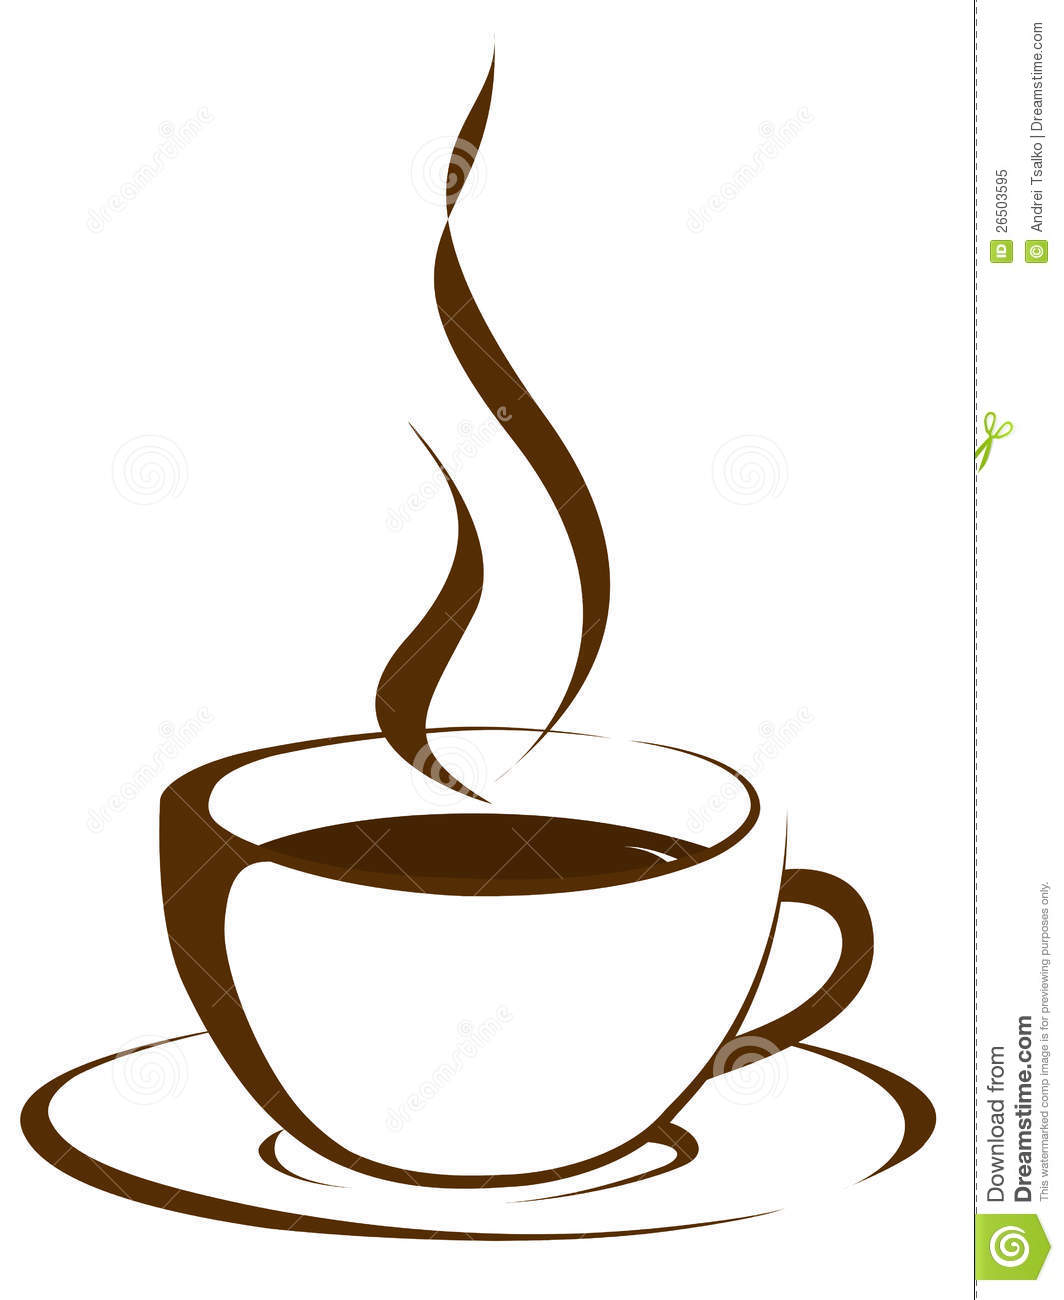 Cup Of Coffee With Steam Royalty Free Stock Photo - Image: 26503595